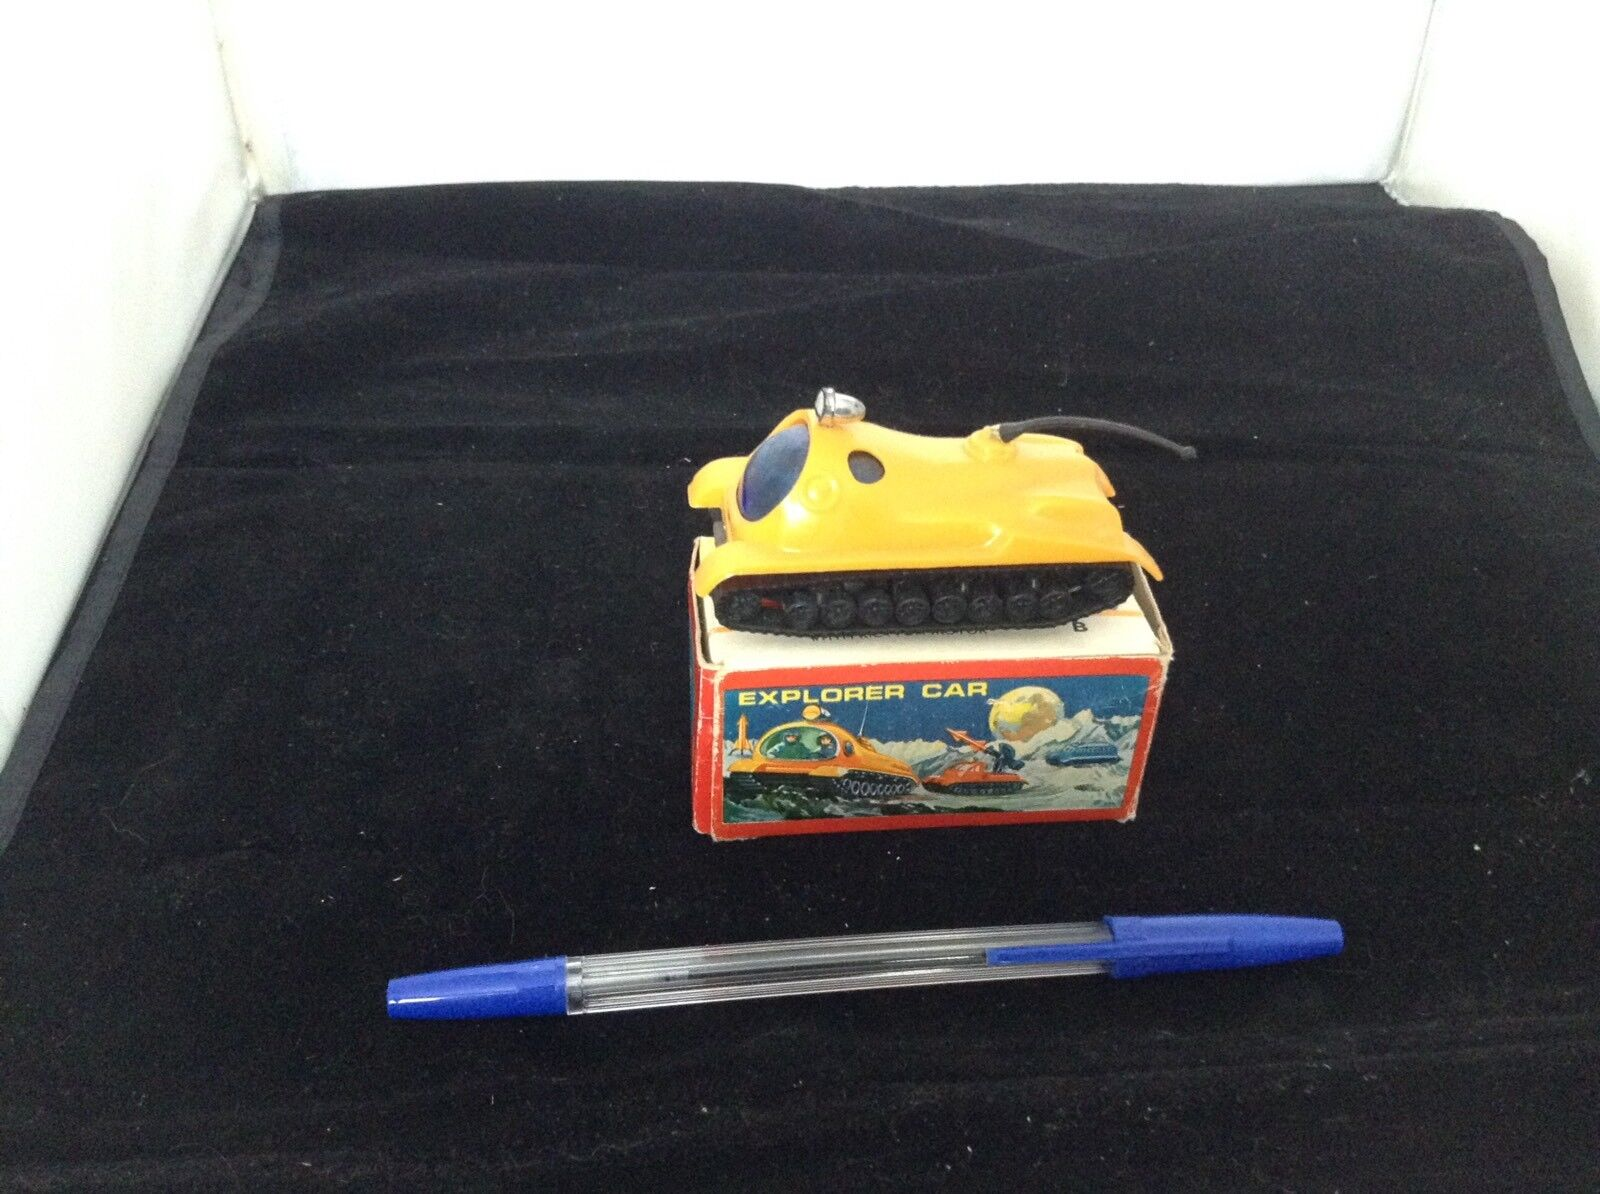 Space Explorer car Friction Toy  Hong Kong 1960s.